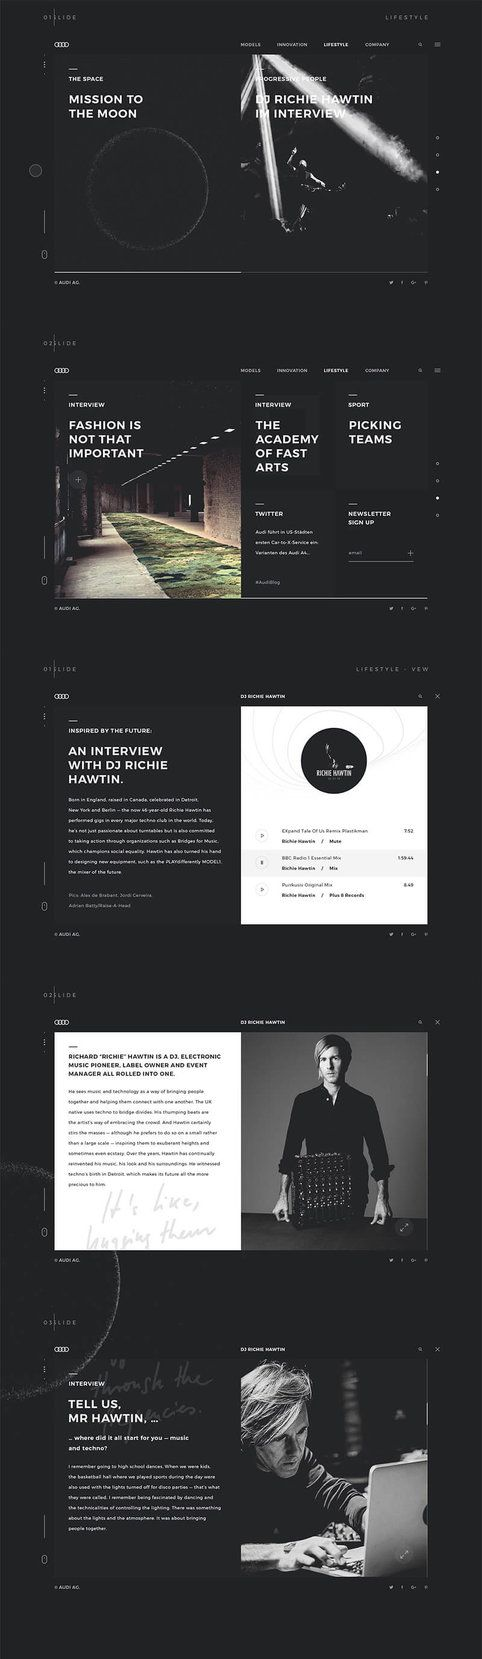 Audi3 #ui #ux #userexperience #website #webdesign #design